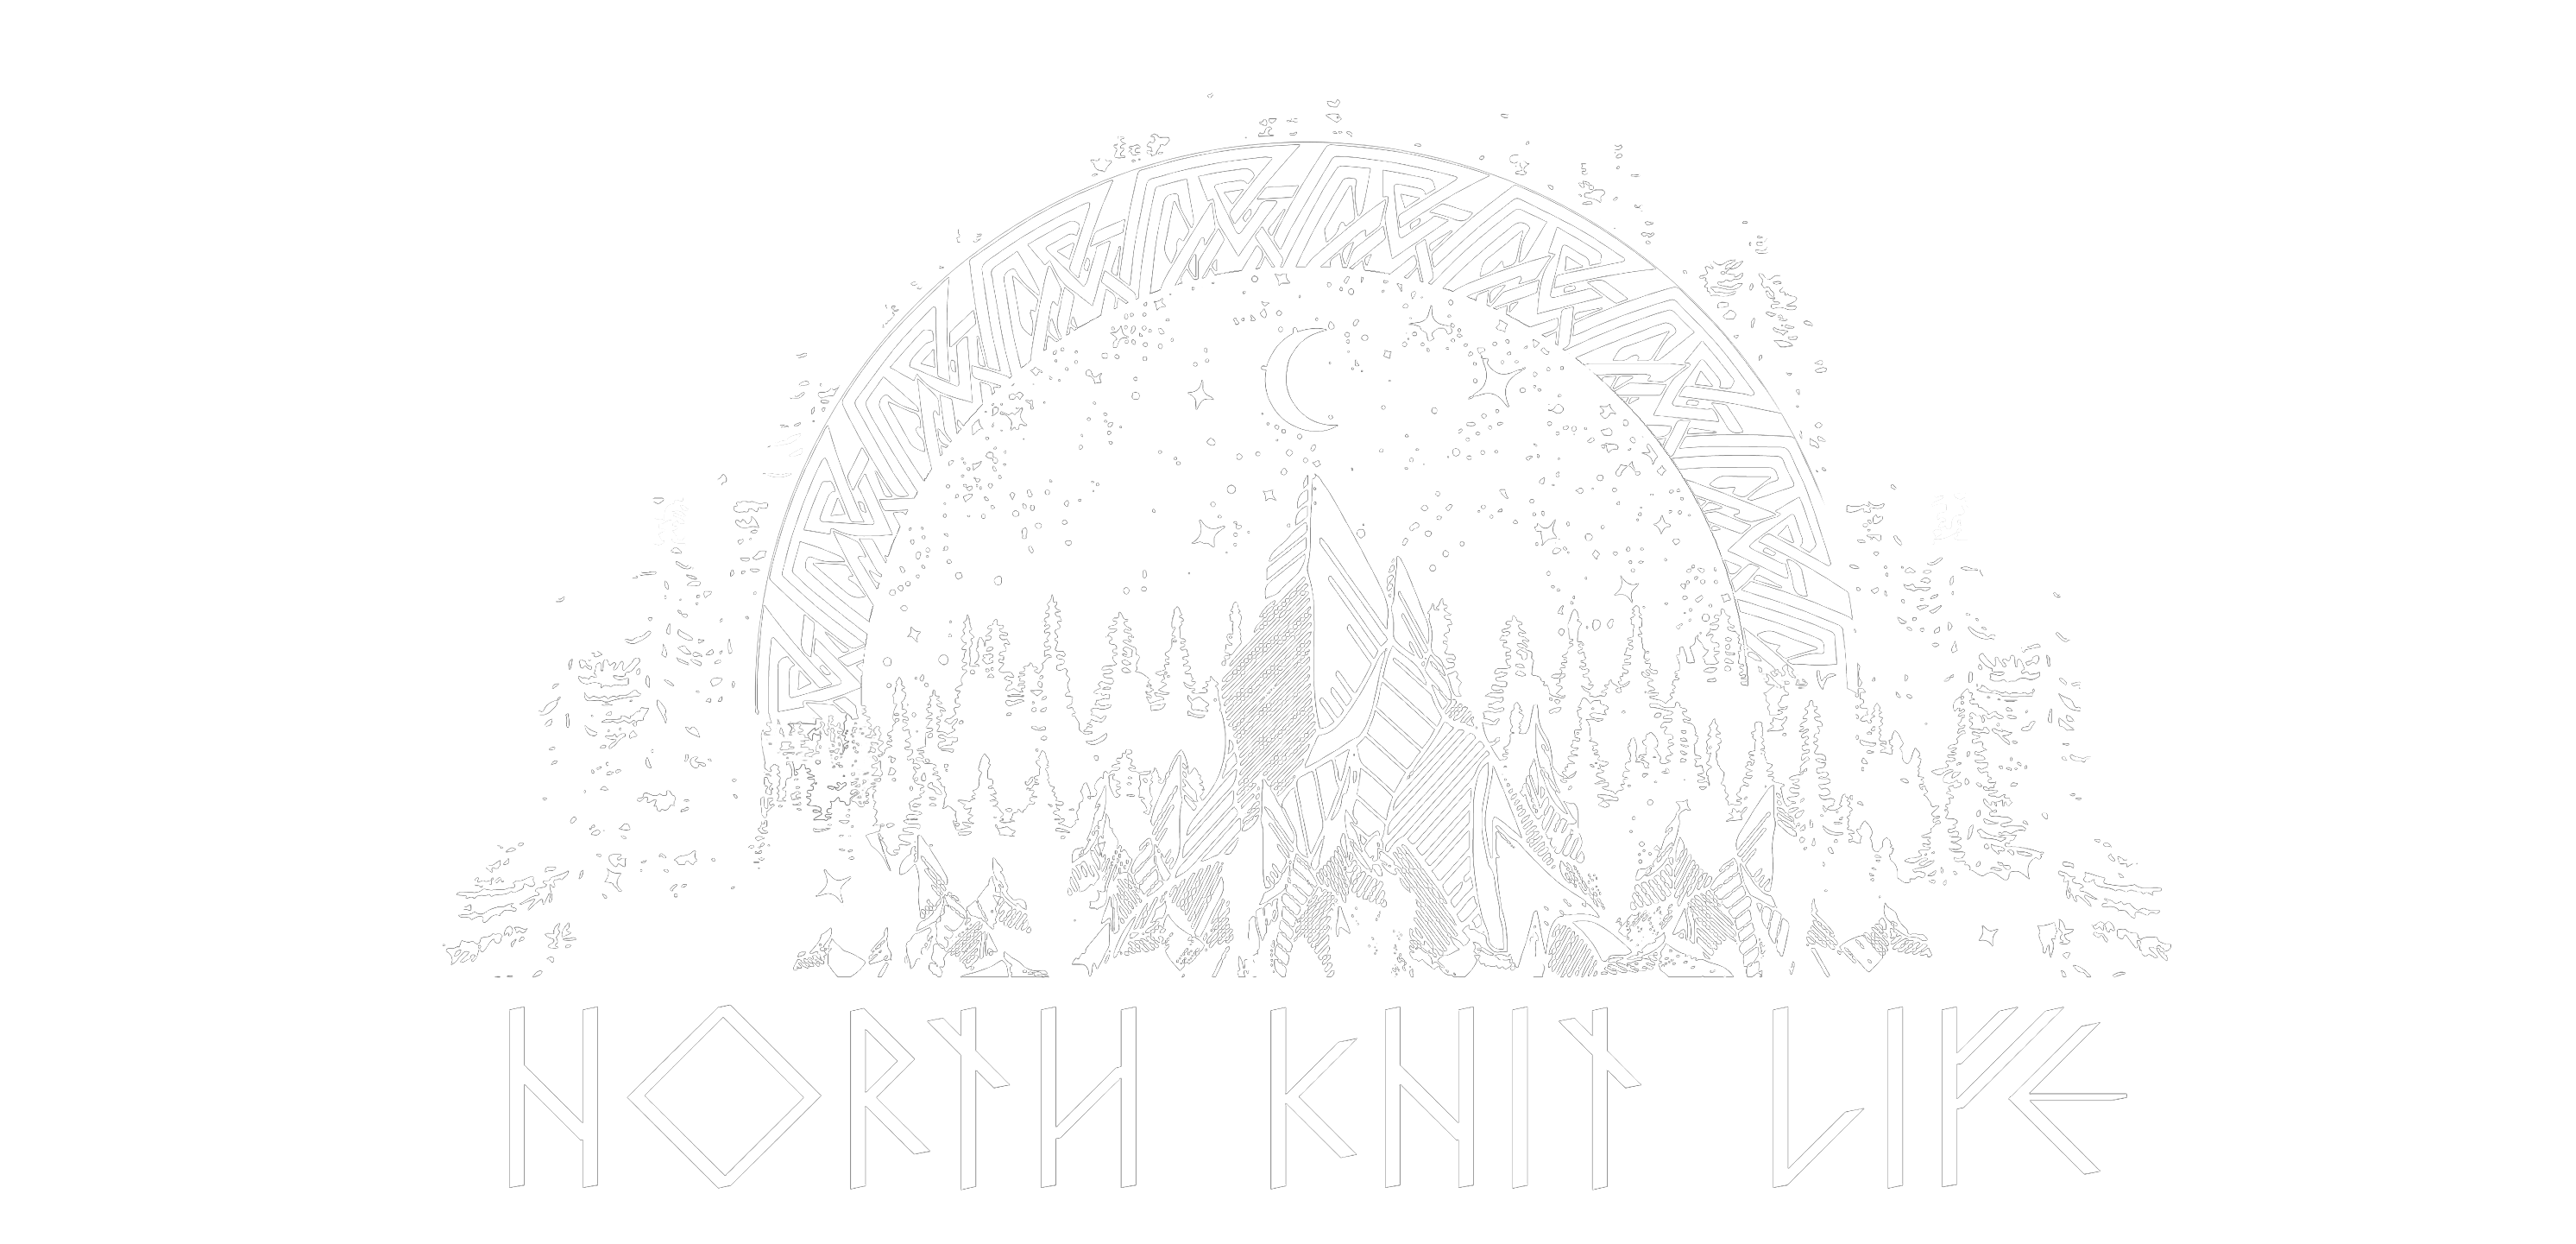 North.knit.life